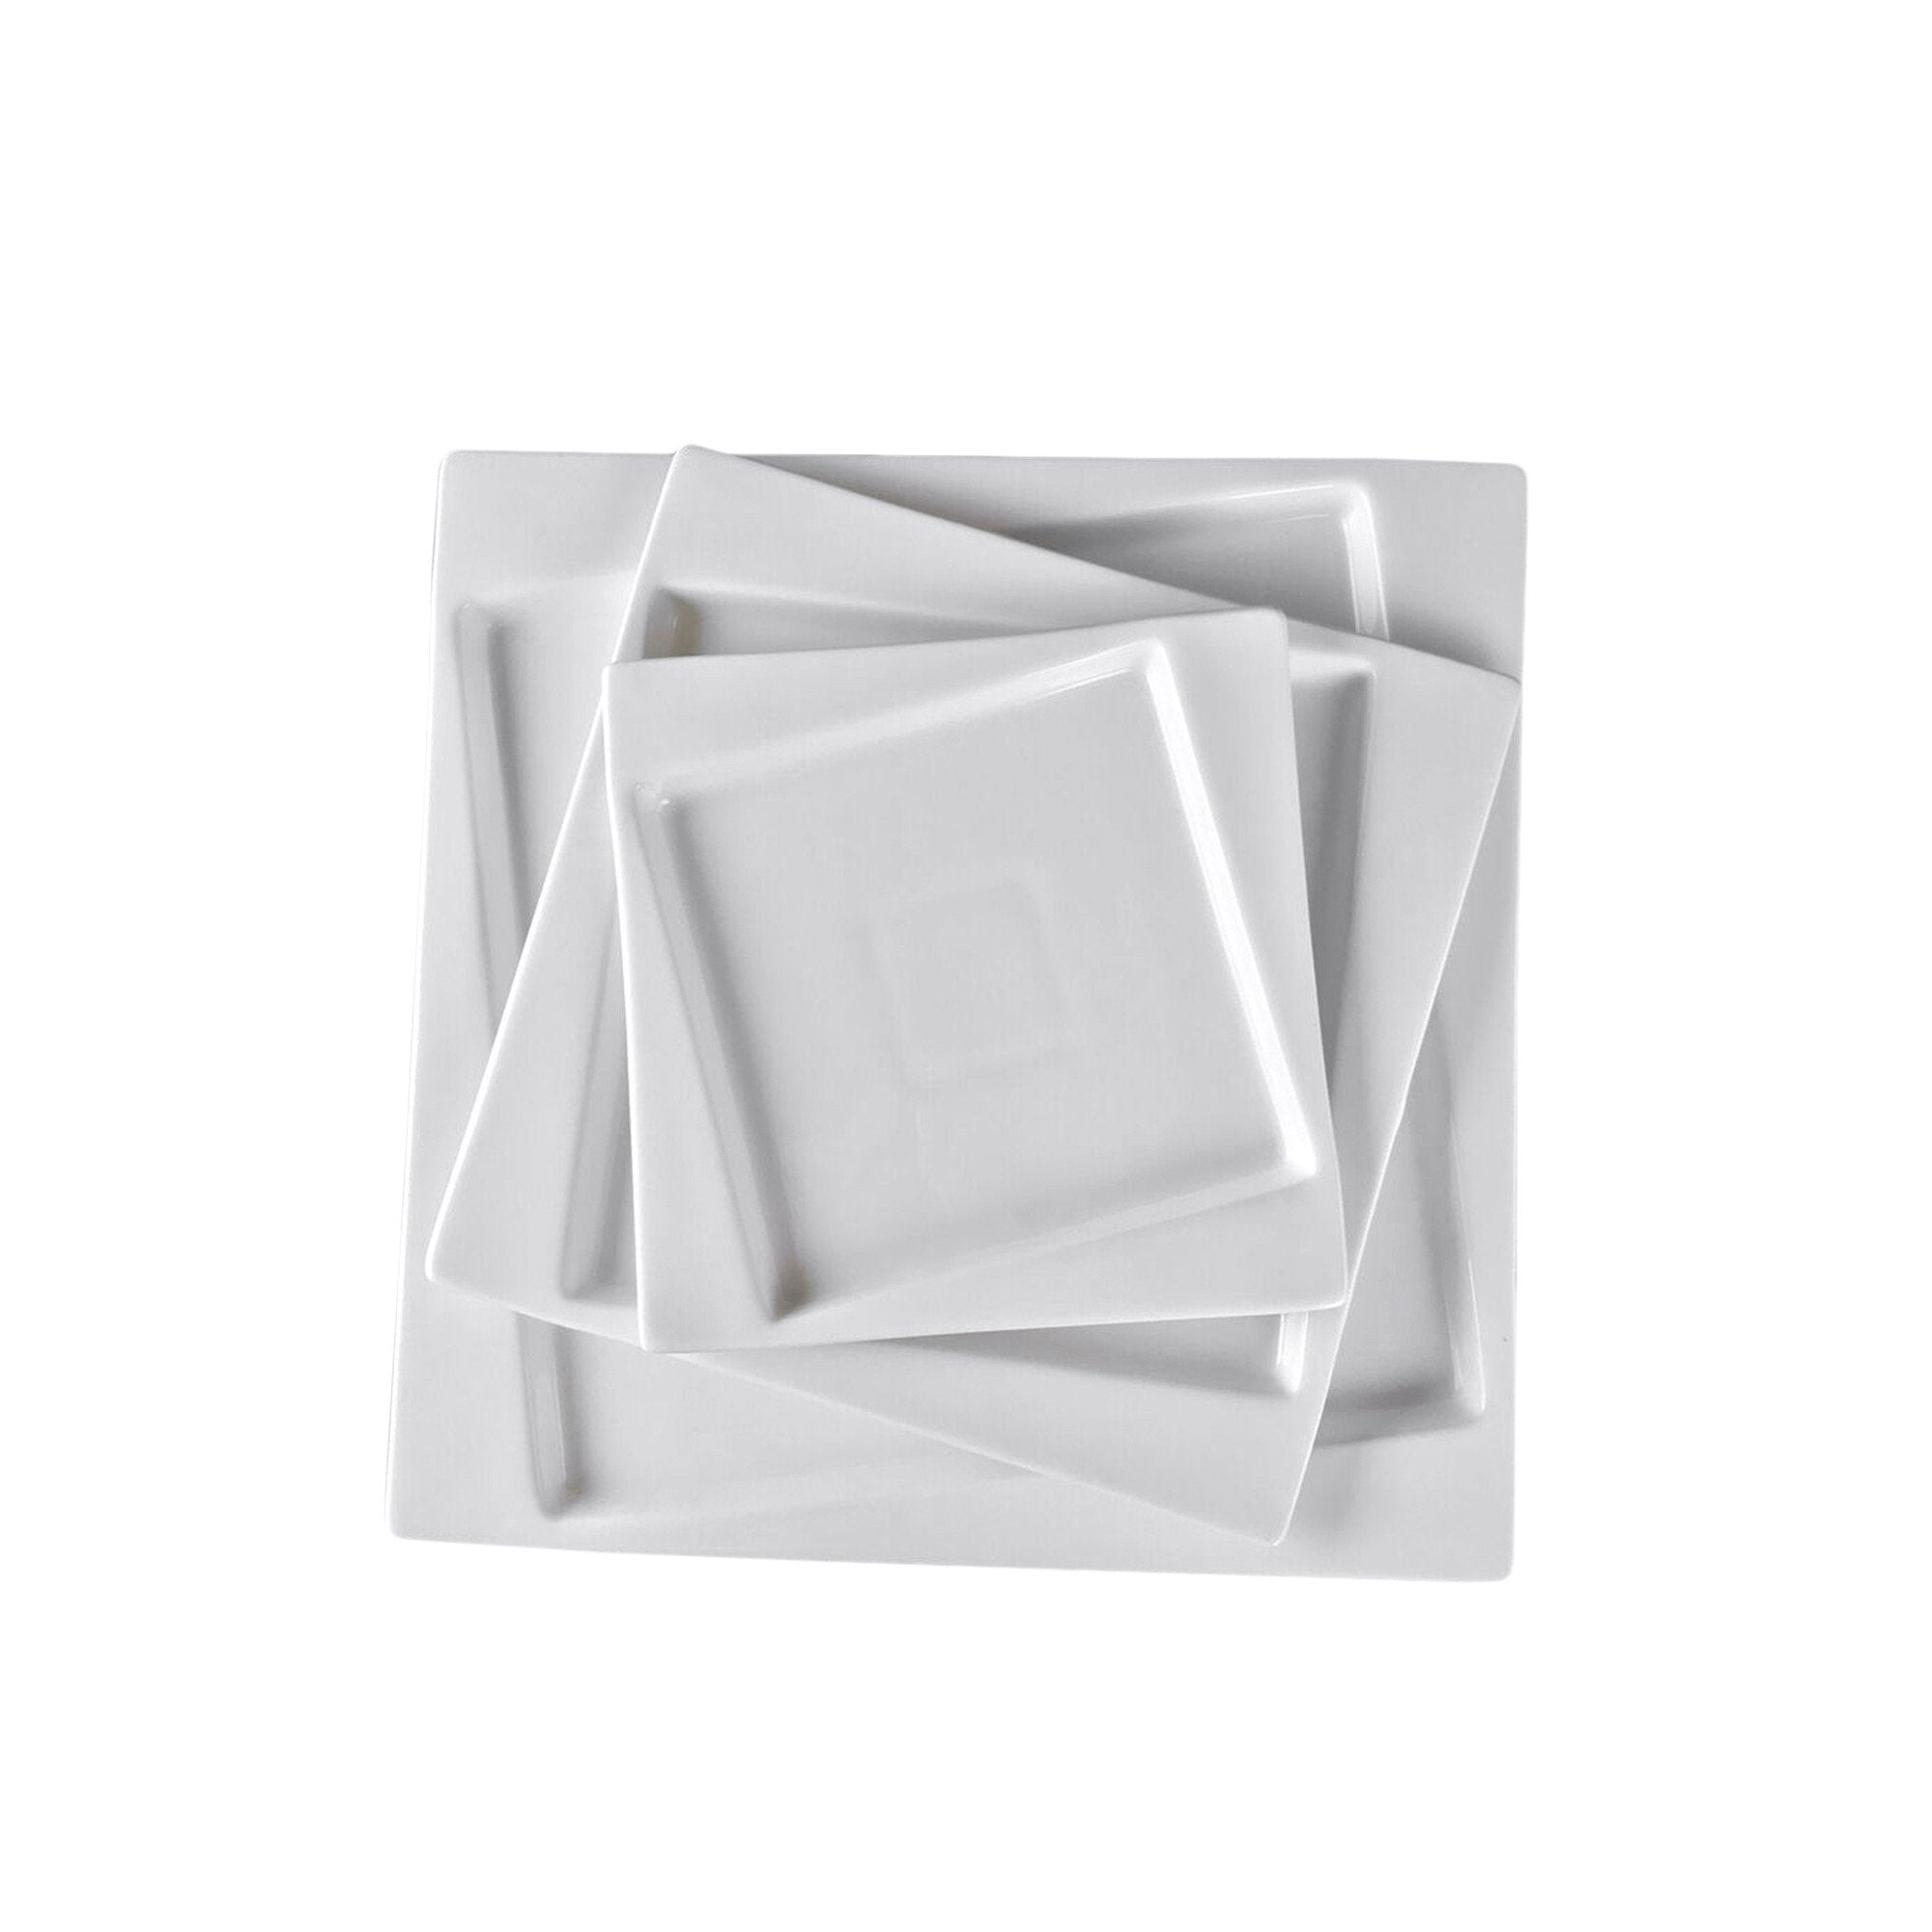 "Square Collection 10.2"" (26 cm) Porcelain Dinner Plate"